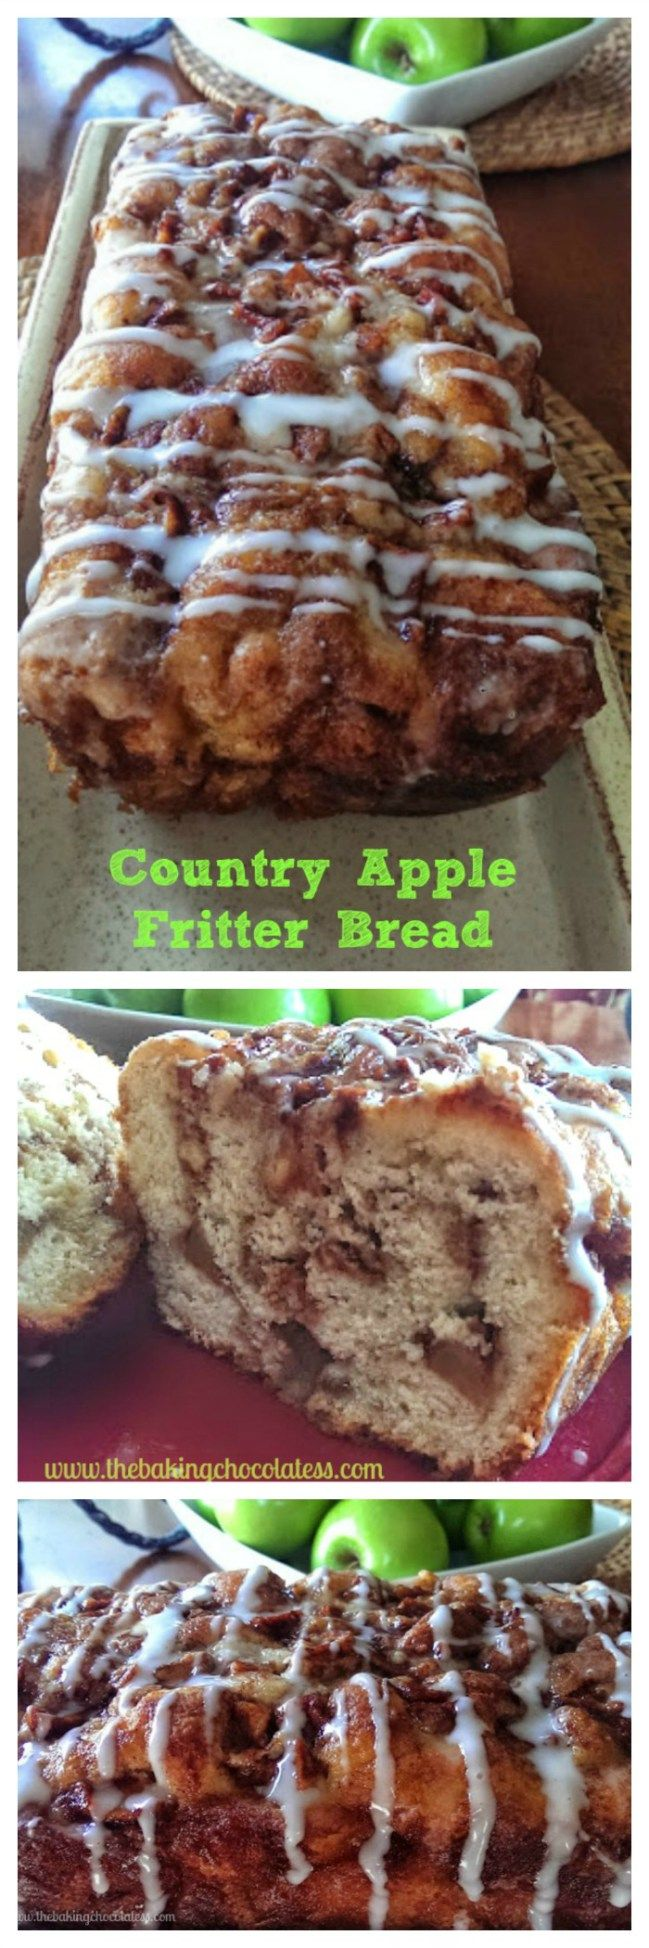 Awesome Country Apple Fritter Bread! Try with gf flour